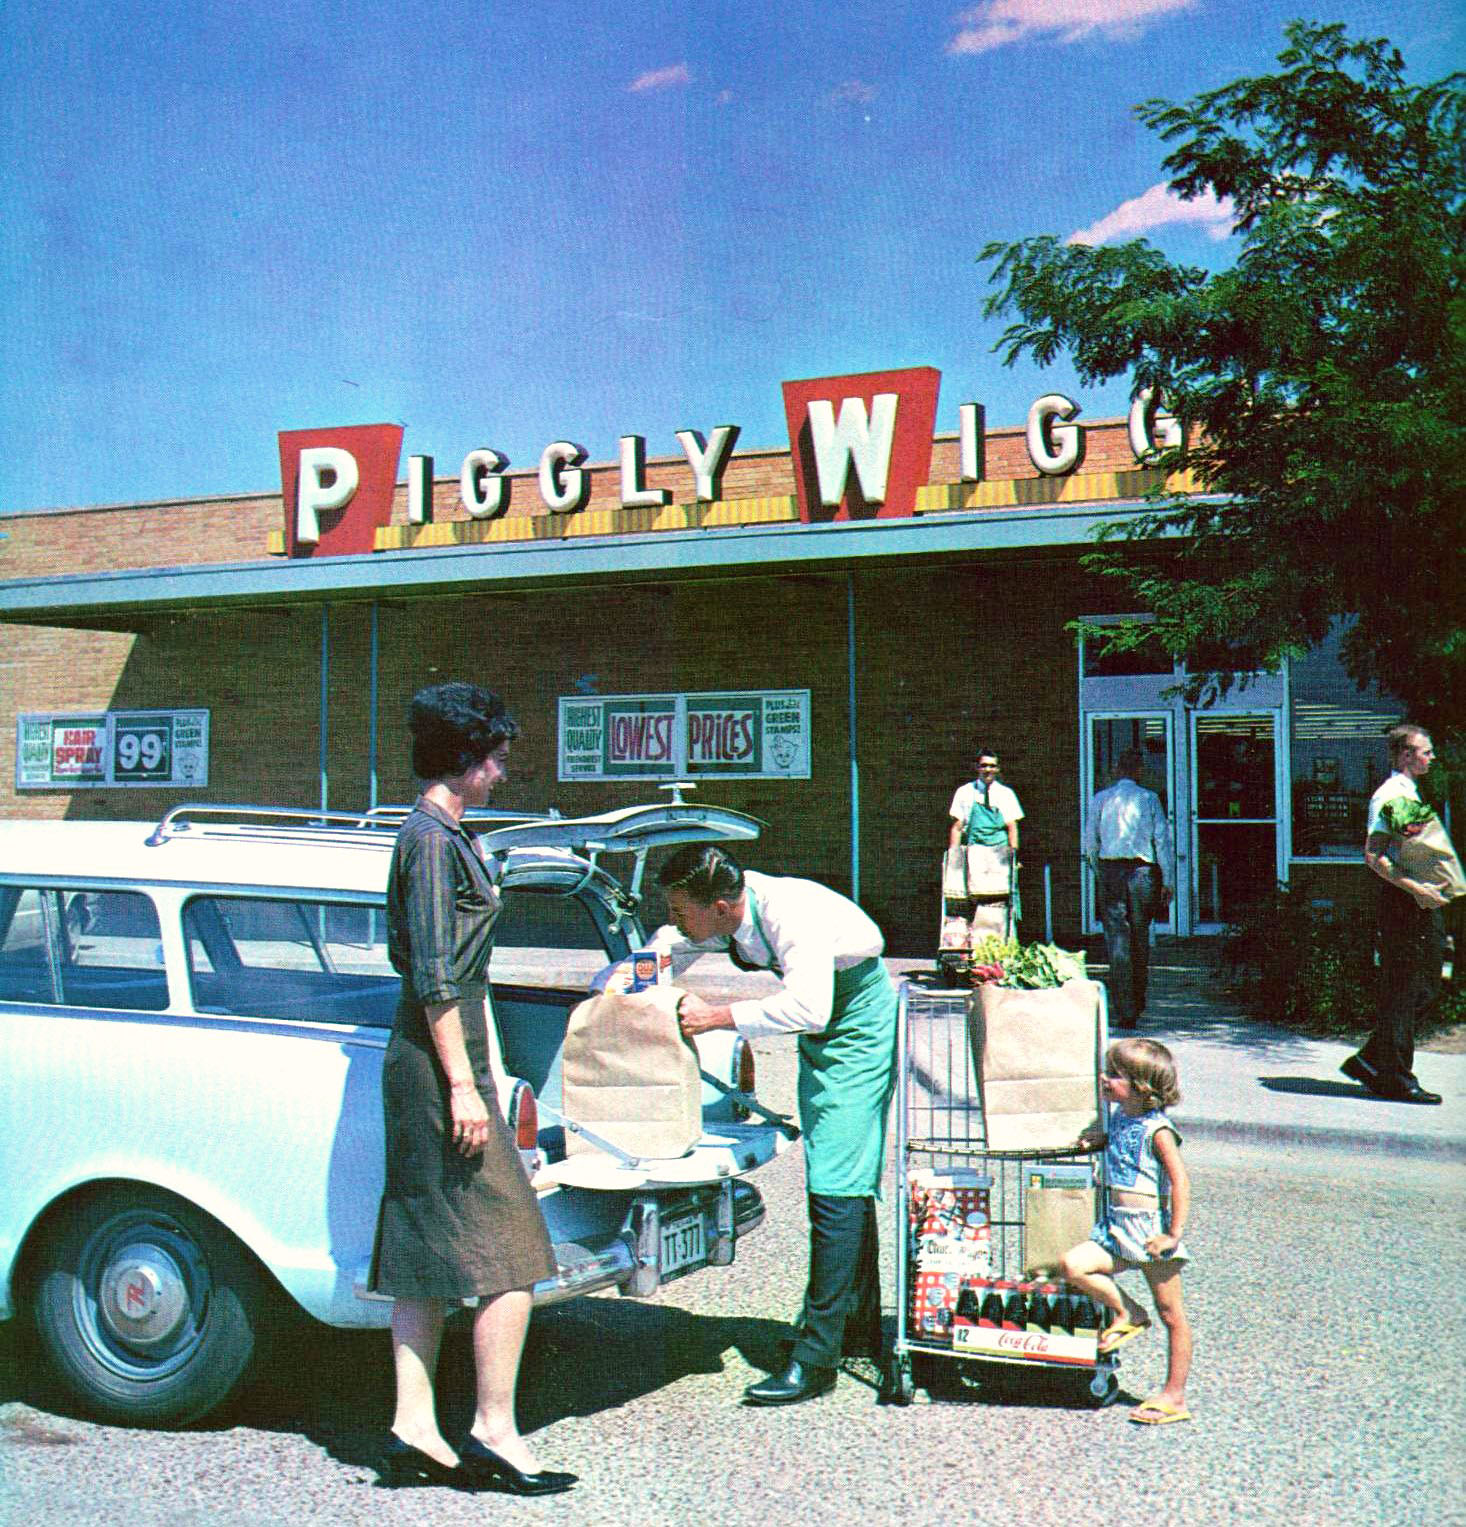 piggly wiggly